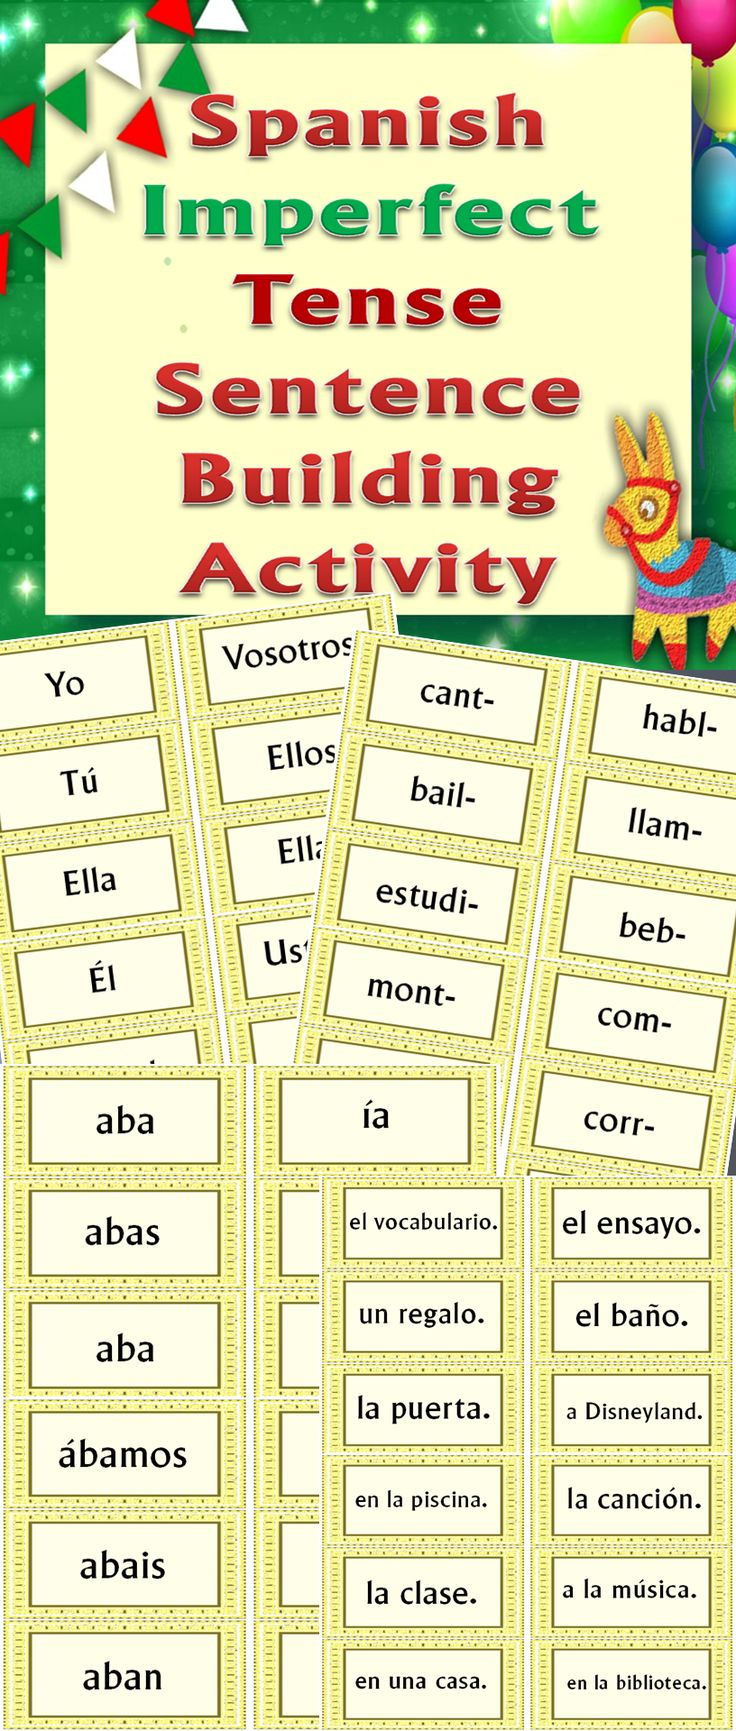 hands on activity making spanish sentences in the imperfect tense complete sentences. Black Bedroom Furniture Sets. Home Design Ideas